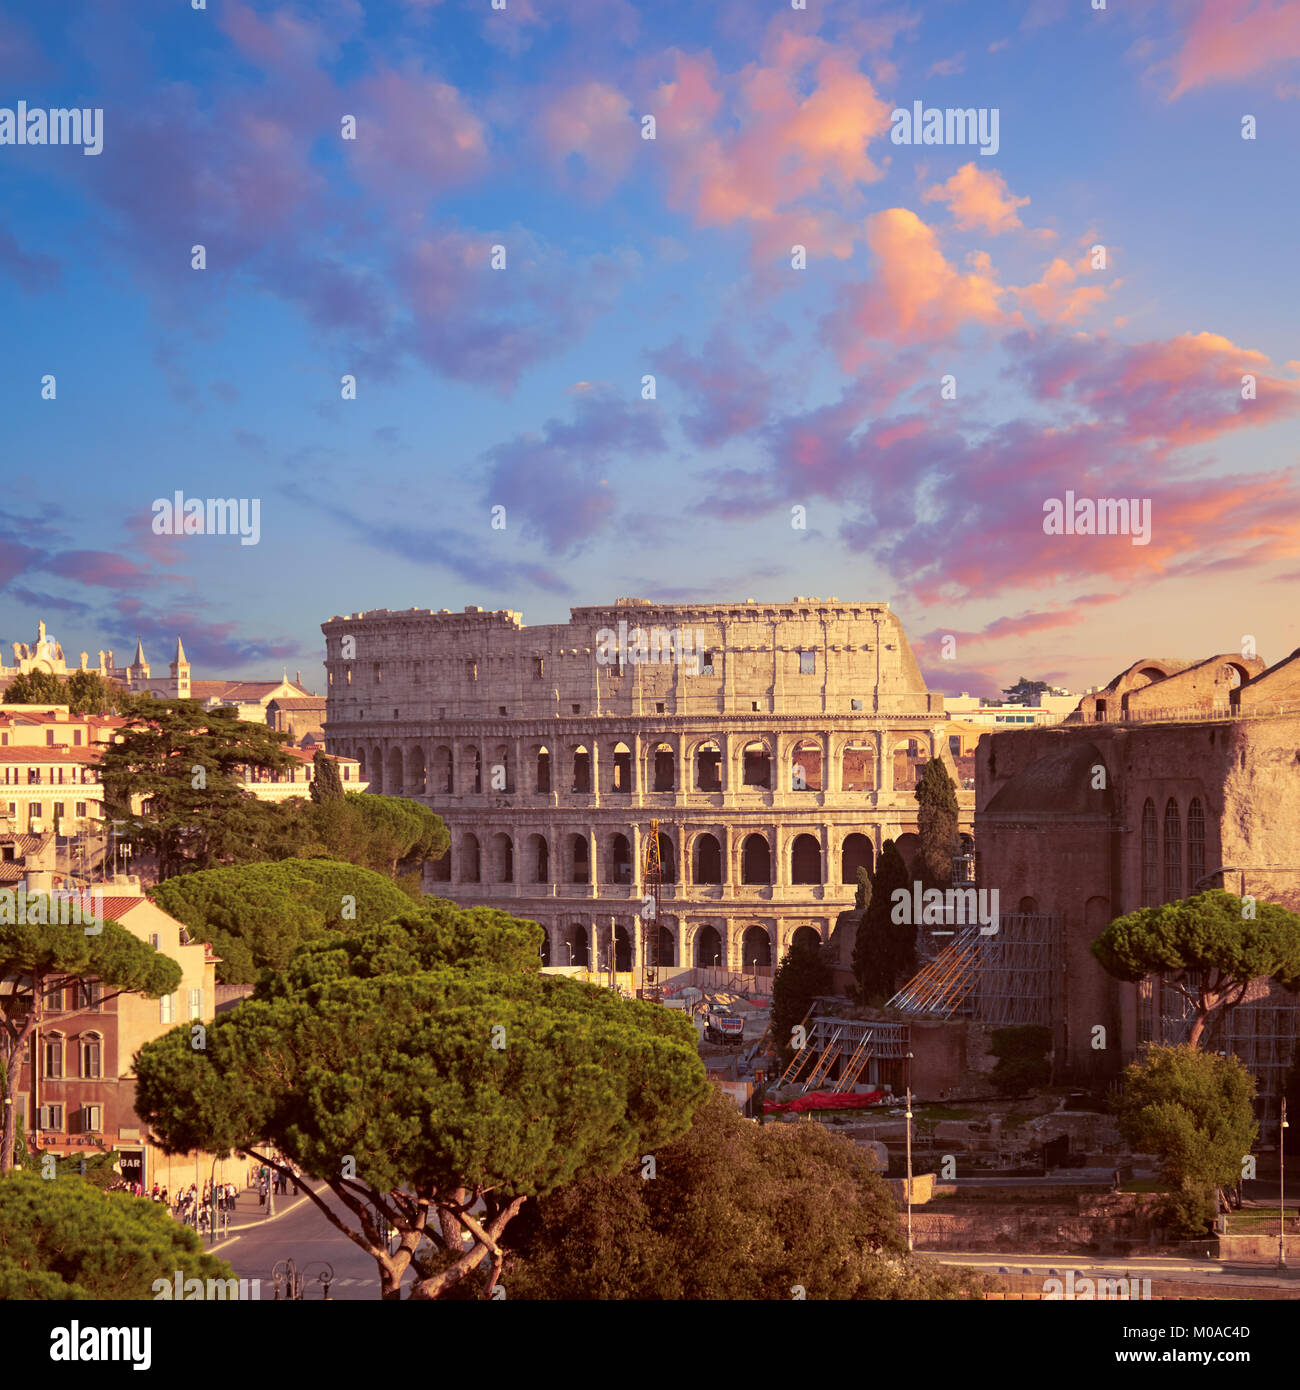 Construction work by Colosseum in Rome, Italy, on a sunset, panoramic image. Stock Photo